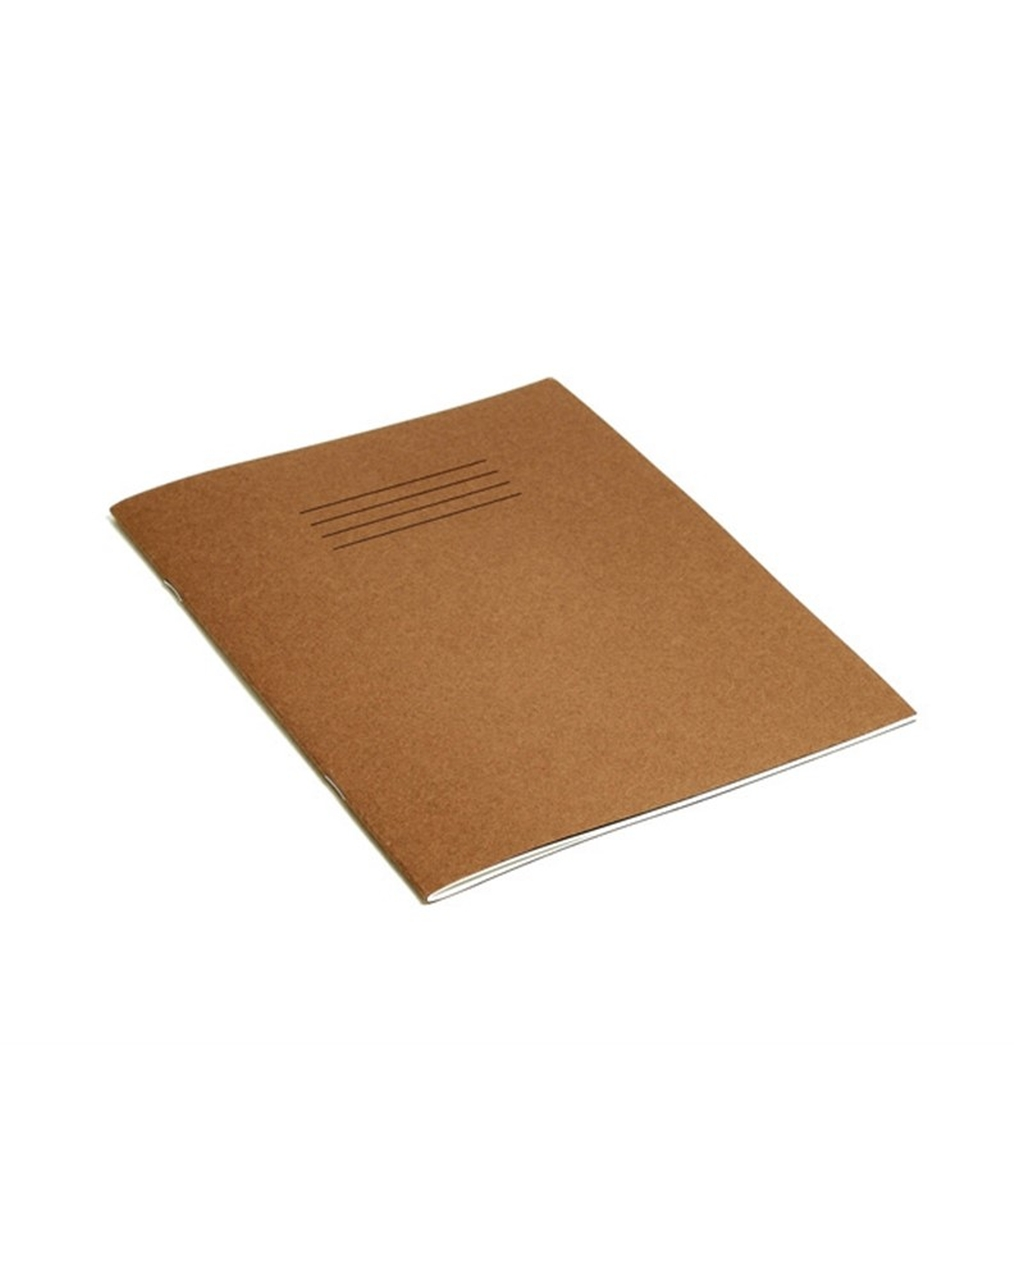 Exercise Book 9 x 7 (229 x 178mm) Buff Cover 8mm Ruled / Plain Alternate Pages 48 Pages